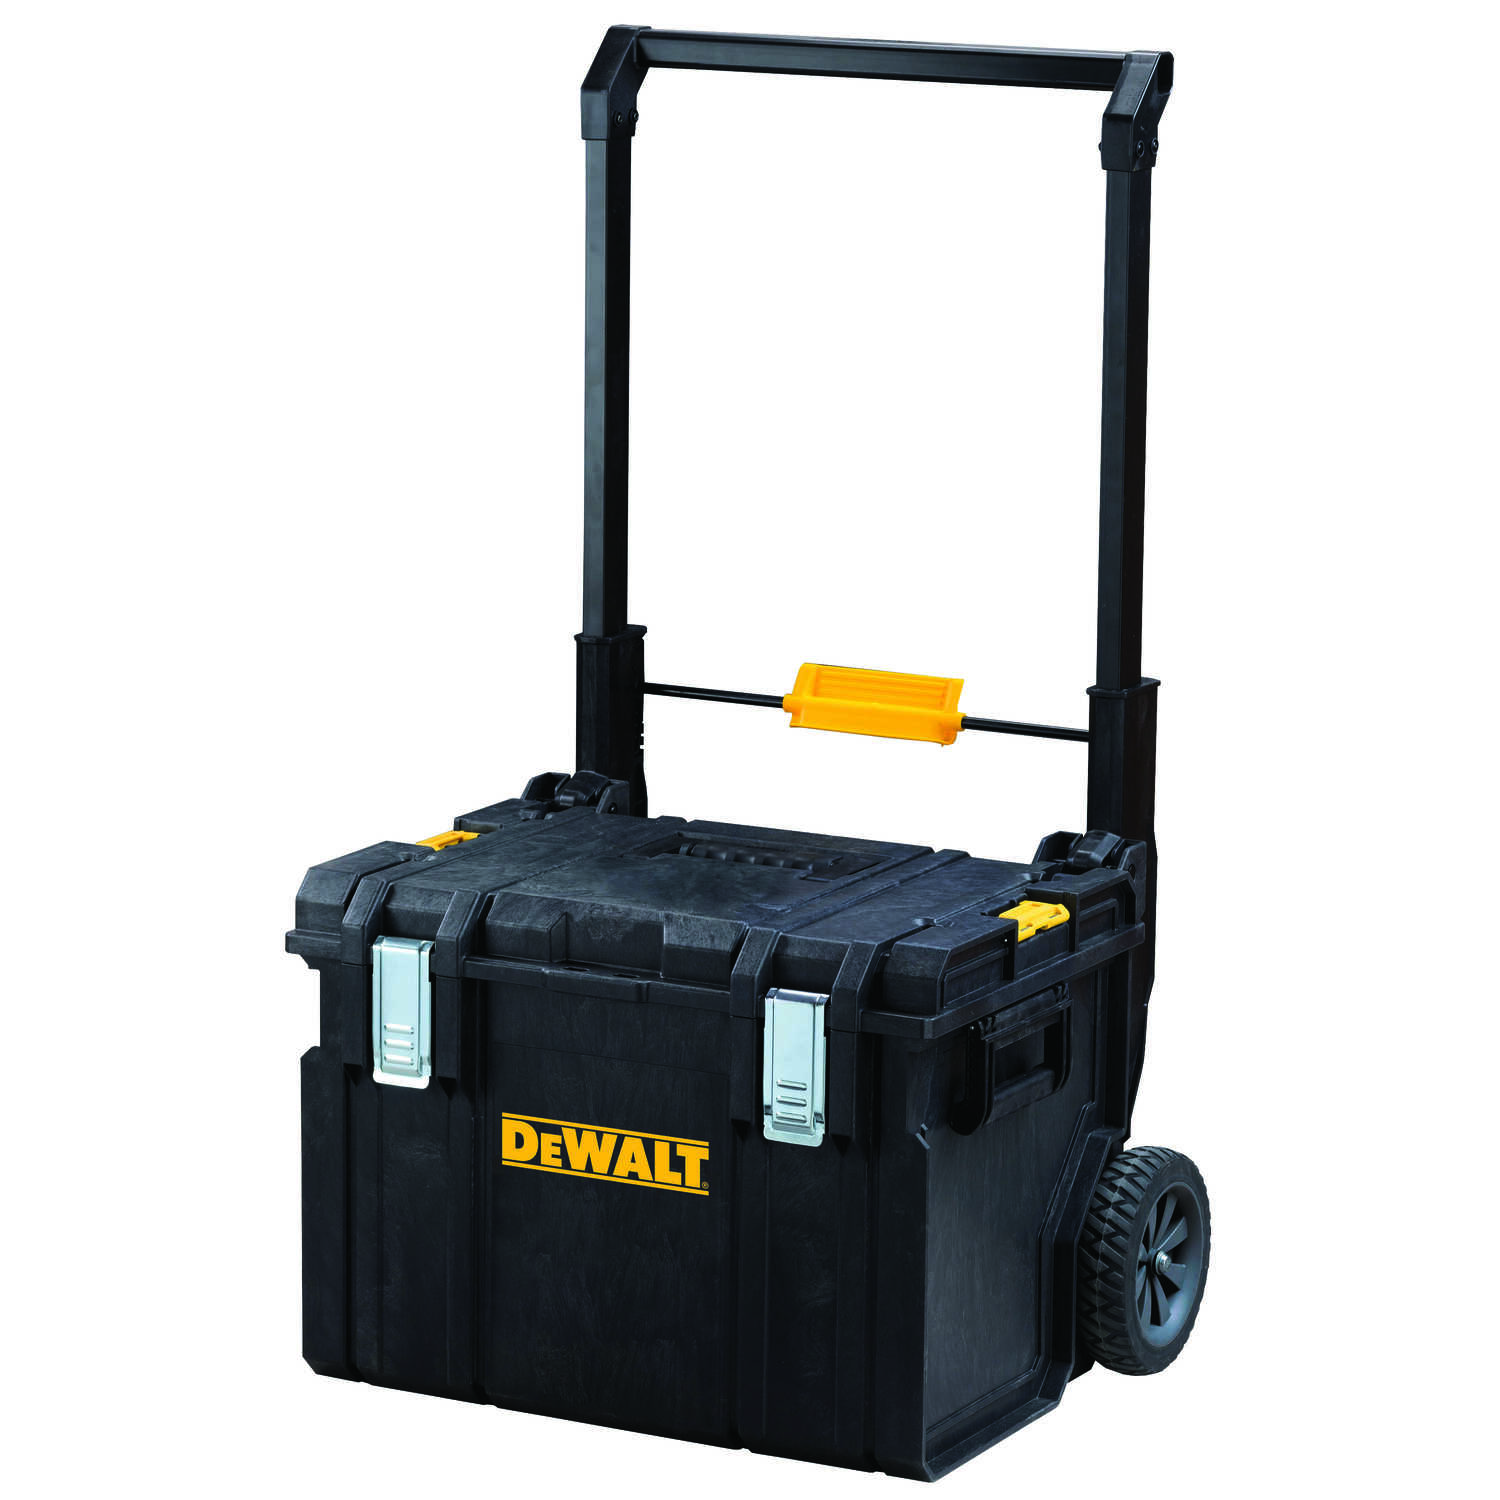 DeWalt  ToughSystem DS450  23 in. Plastic  Tool Mobile Storage  18 in. W x 24 in. H Wheeled Black